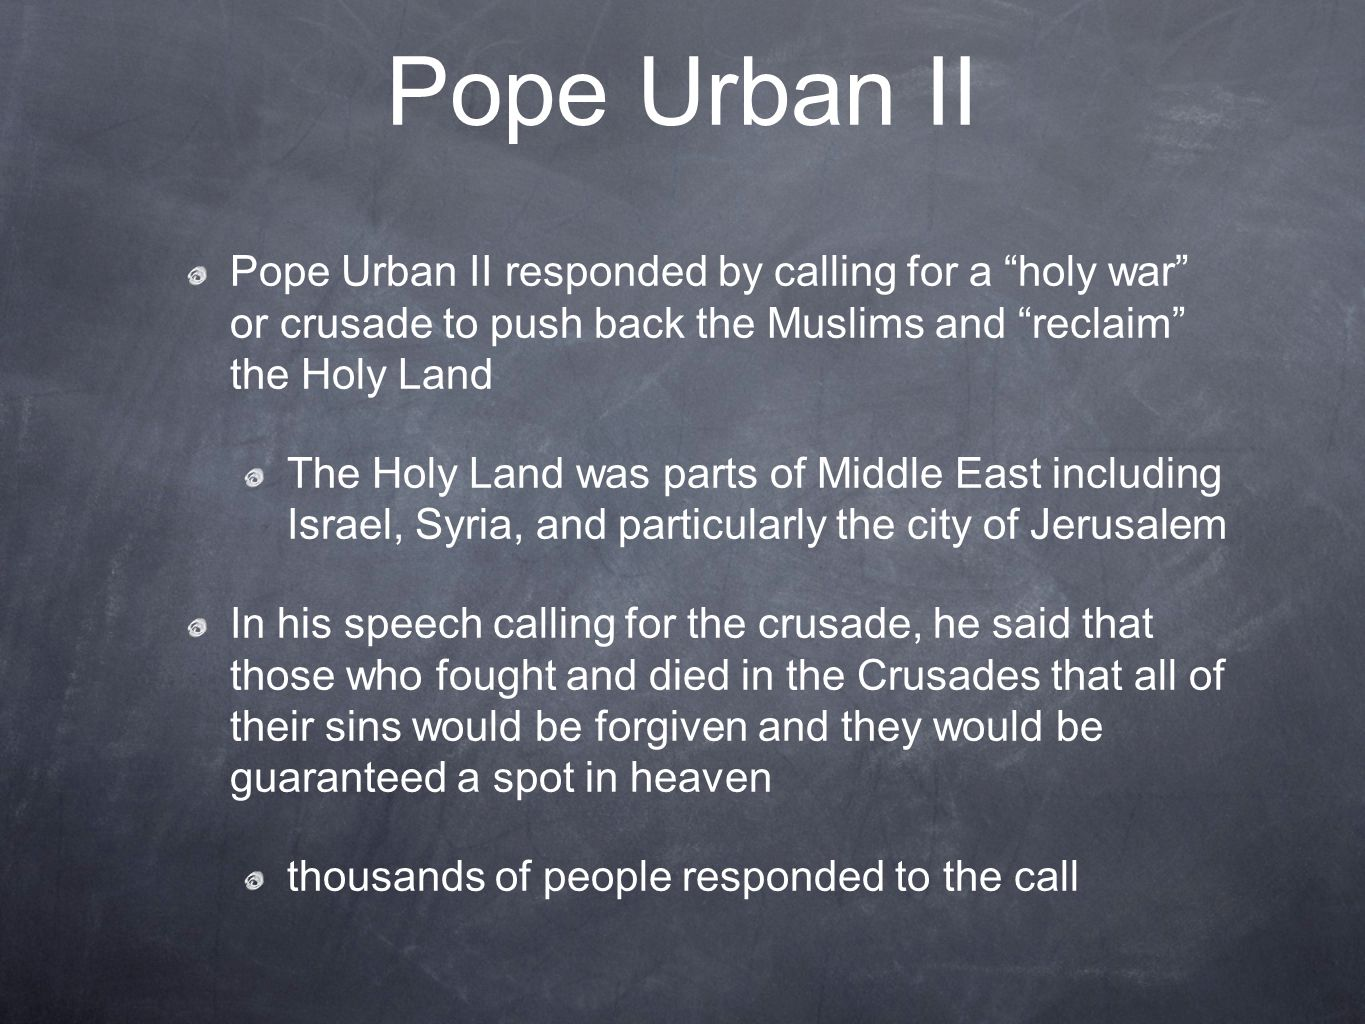 Pope Urban II Pope Urban II responded by calling for a holy war or crusade to push back the Muslims and reclaim the Holy Land.